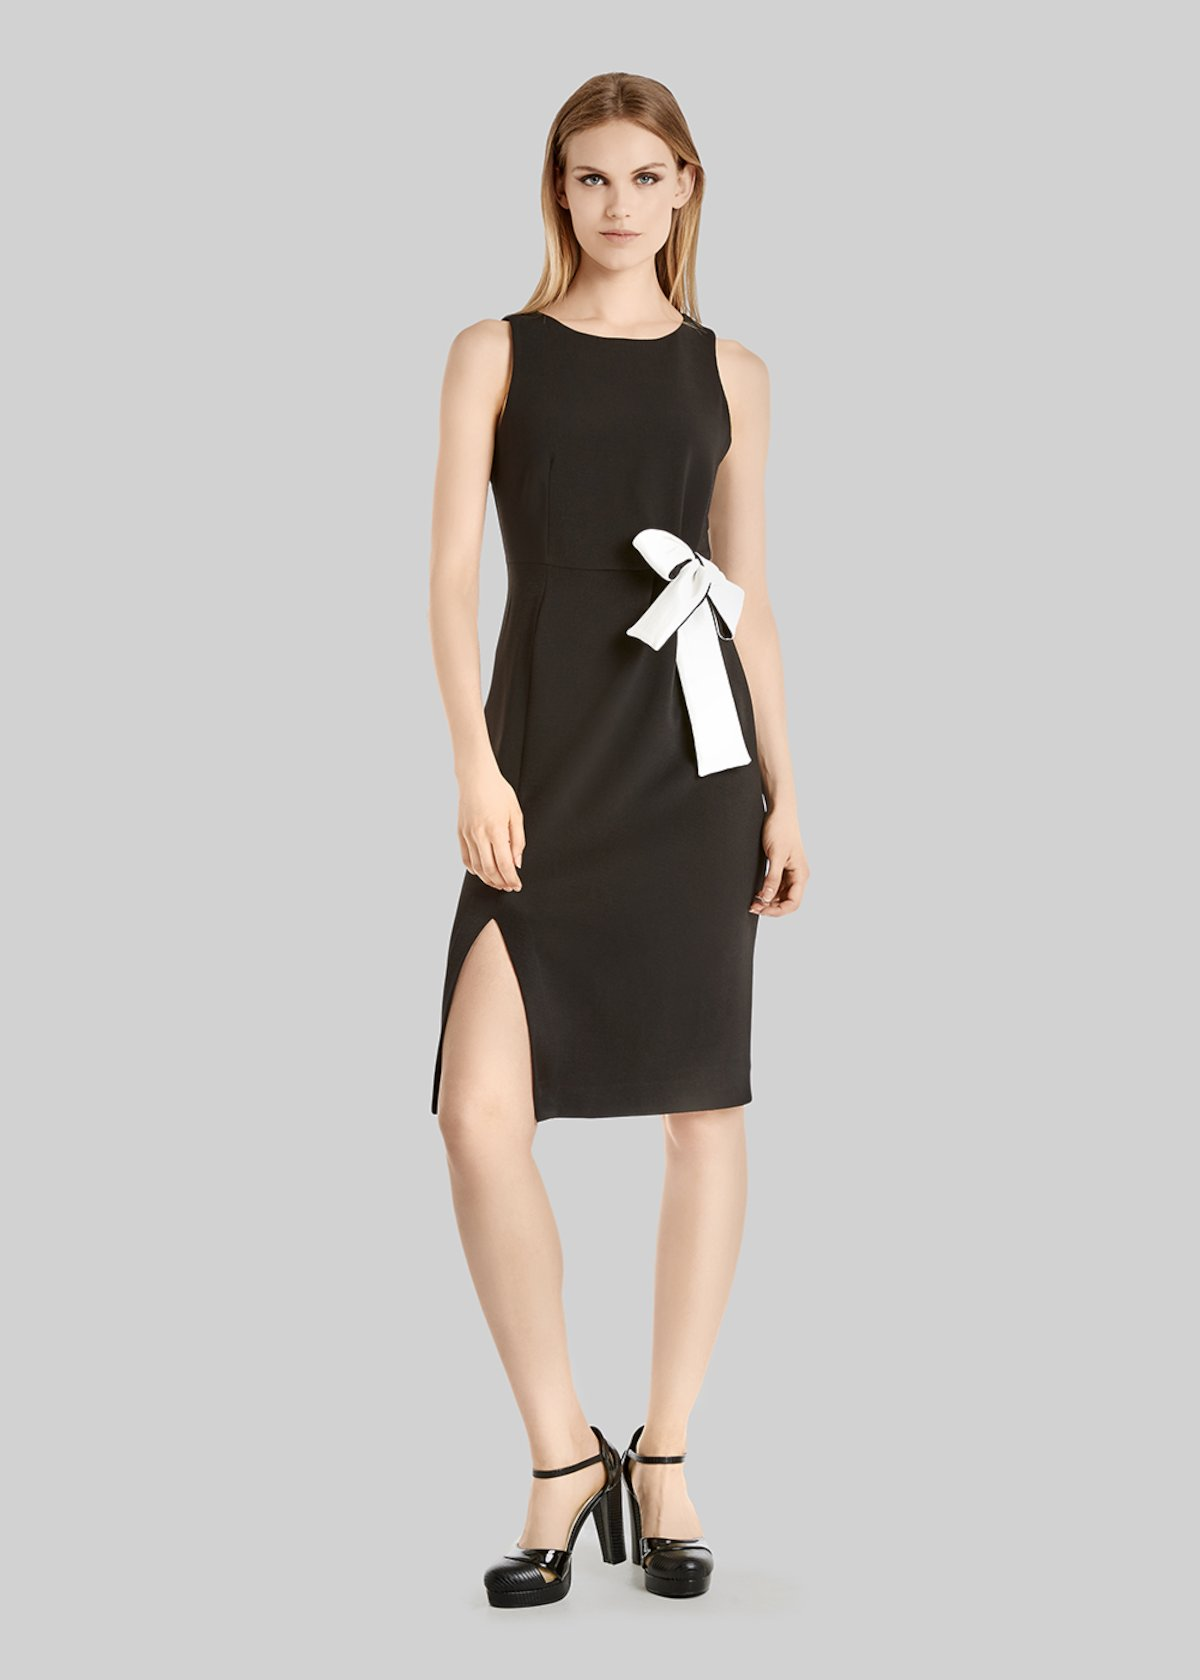 Alessiocrépe dress with bow at waist and side slit - Black / White